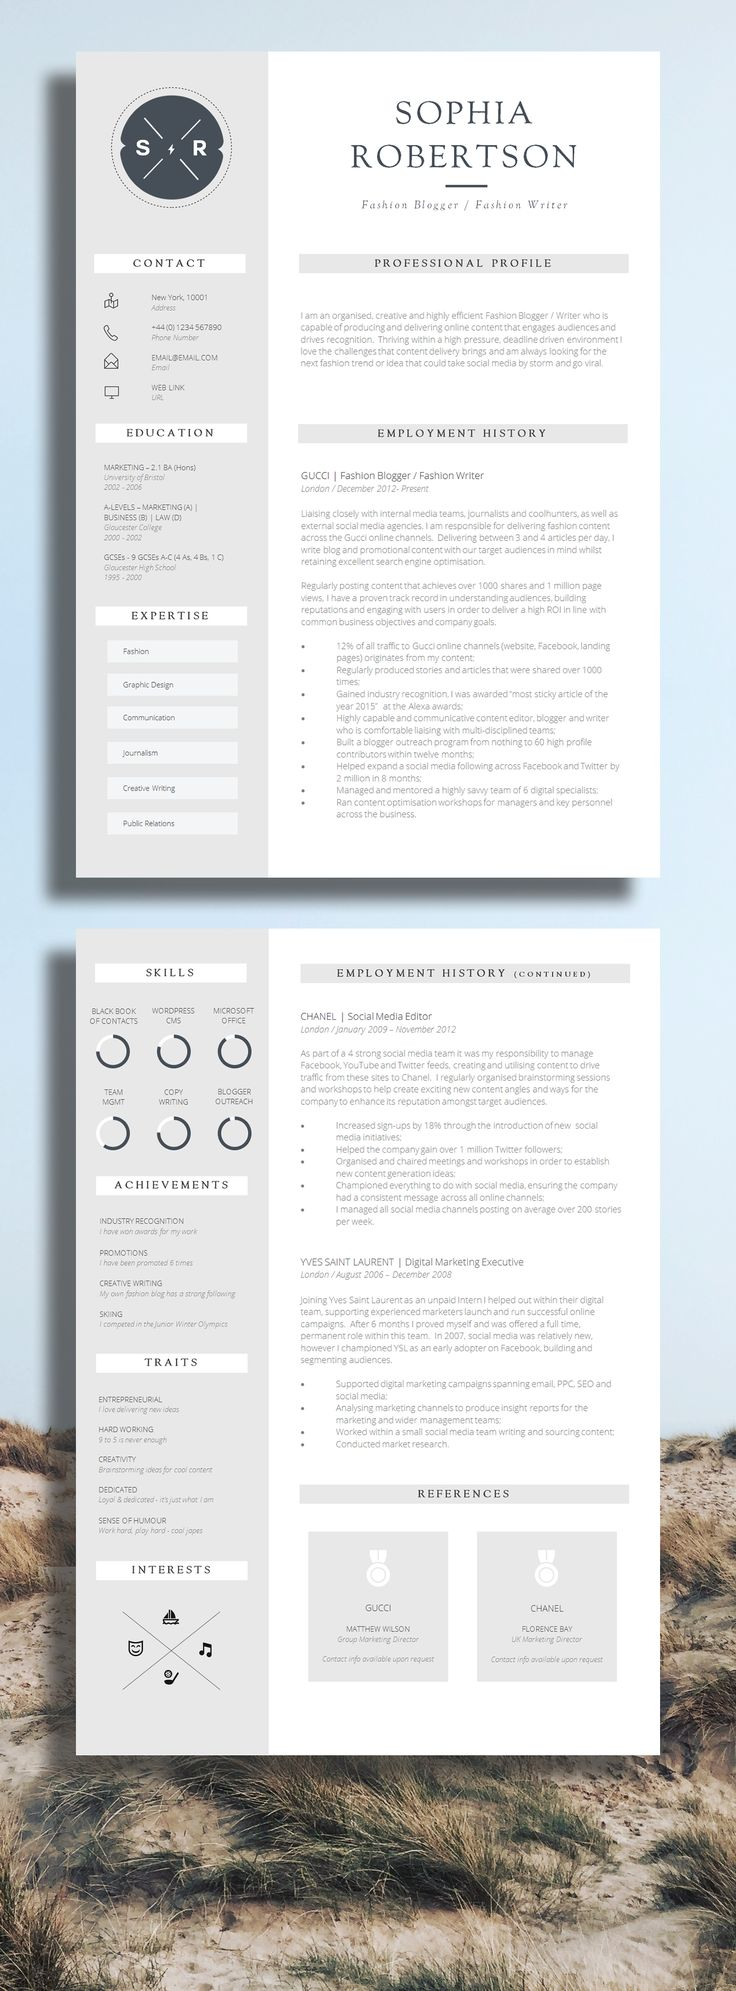 269 best WORK images on Pinterest | Resume templates, Productivity ...